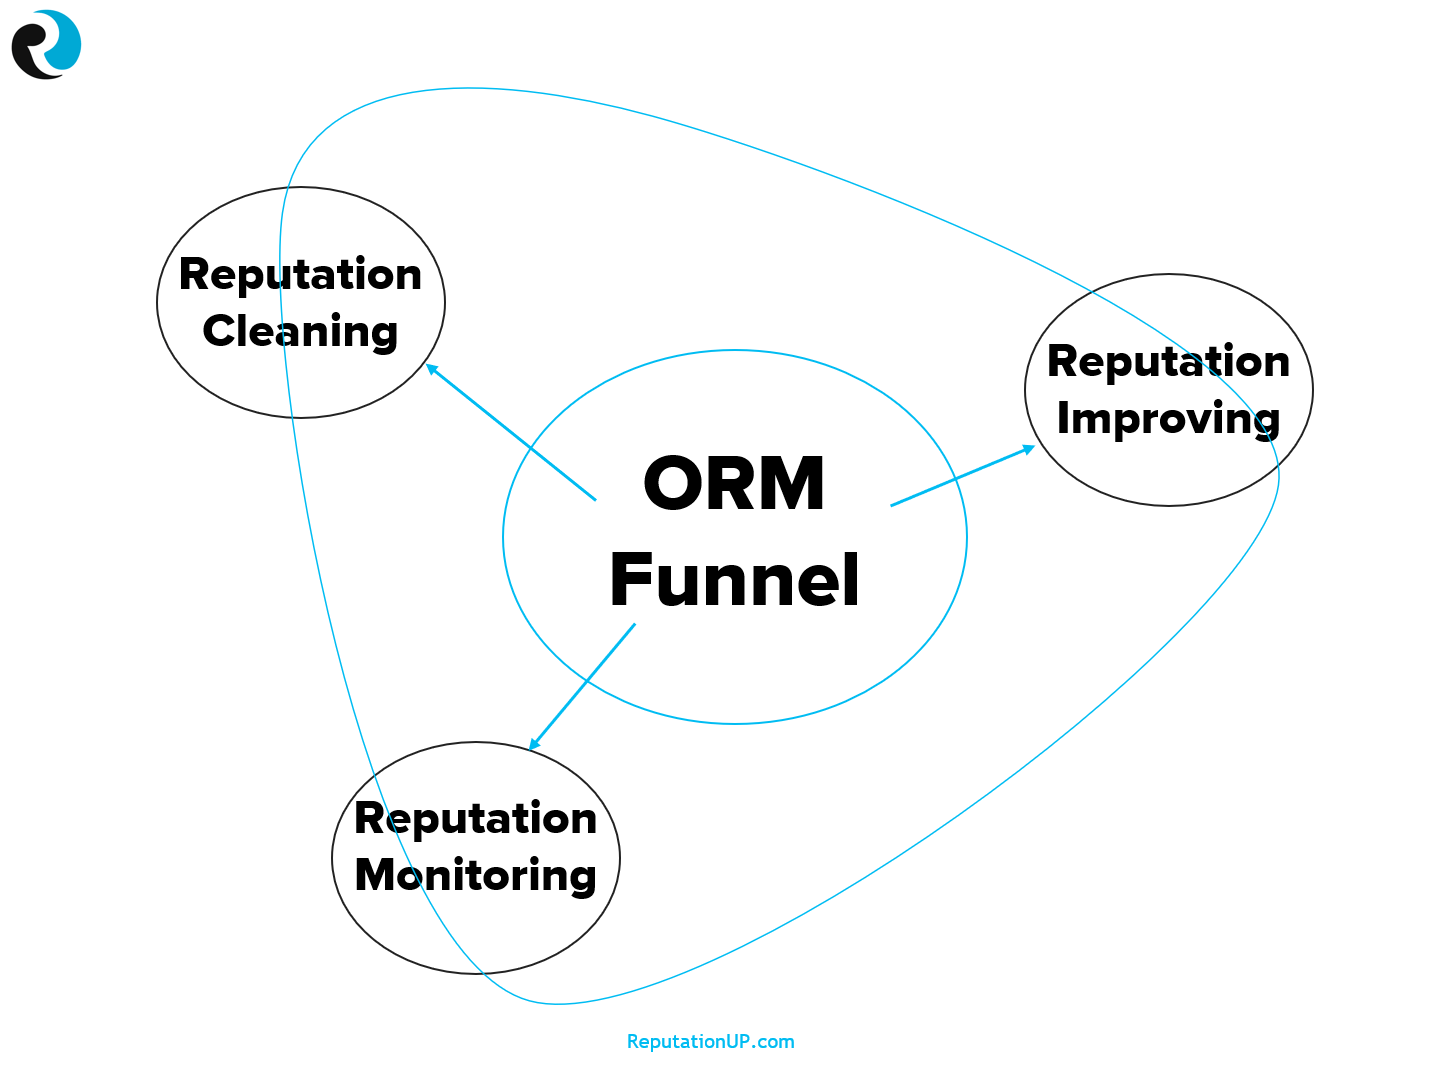 online reputation management funnel di reputationup